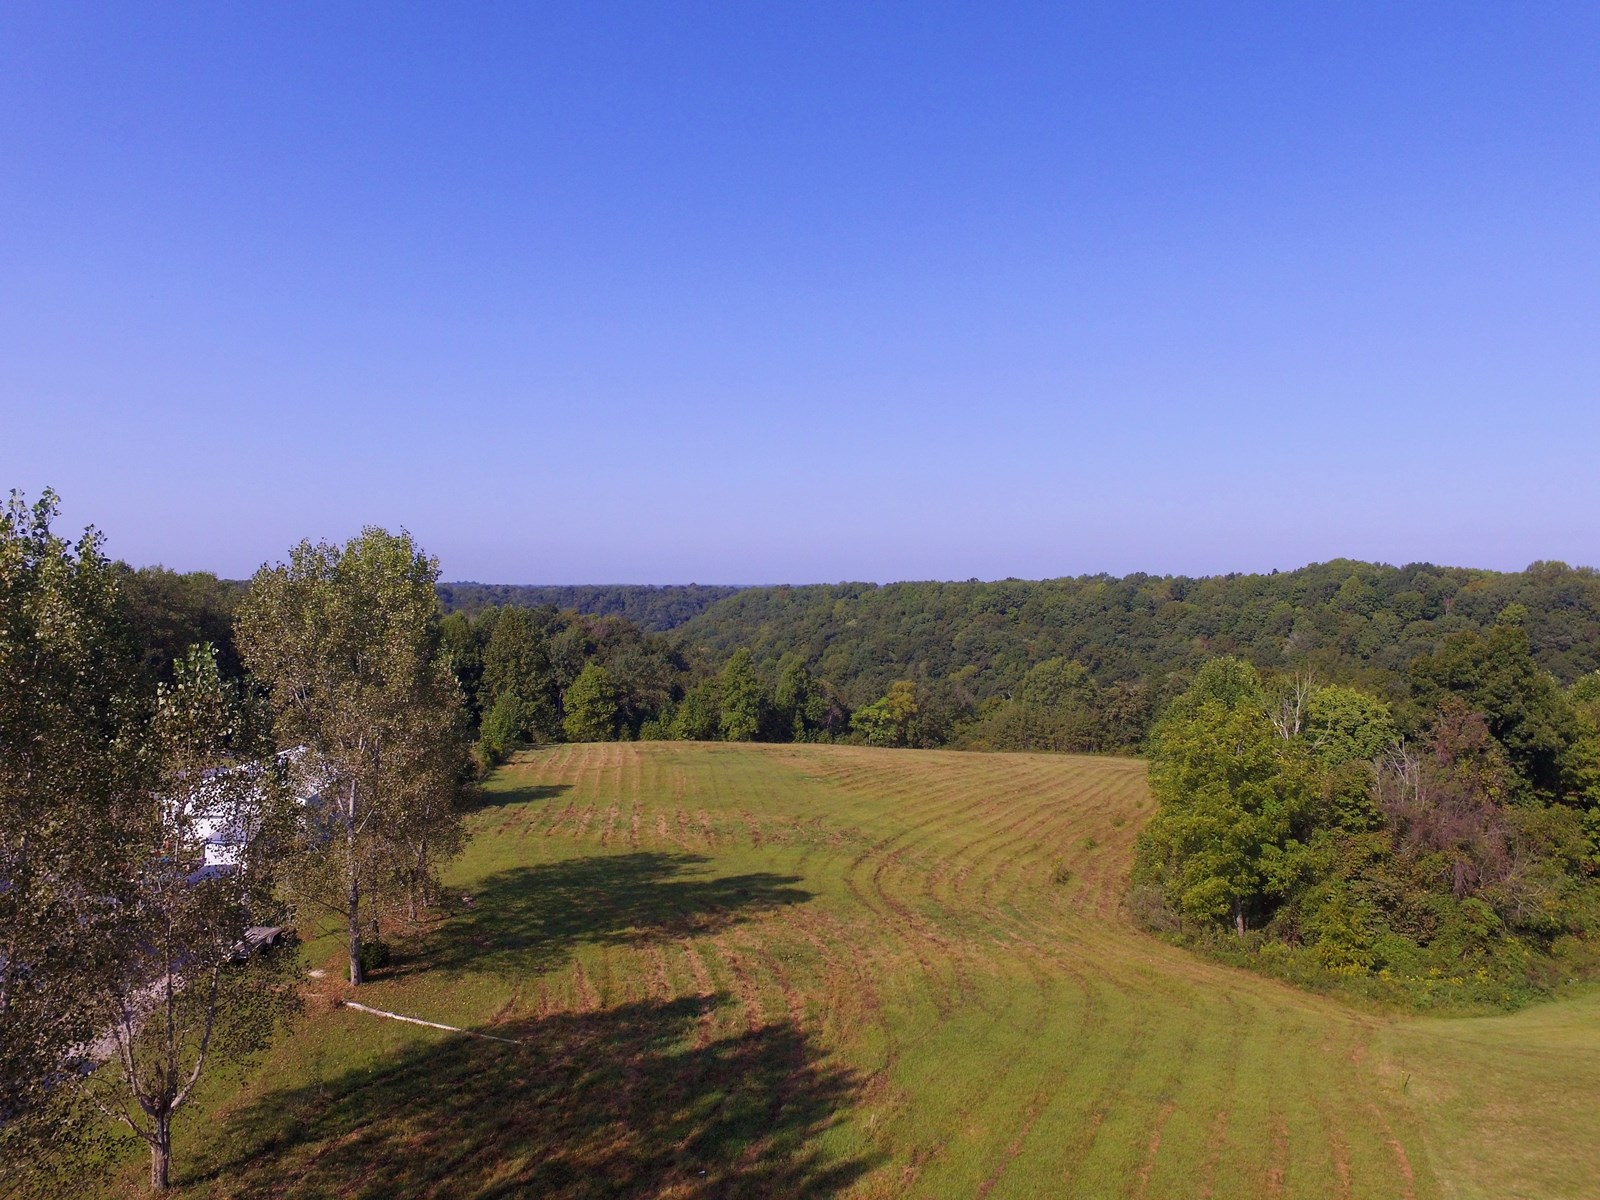 CLEARED & WOODED ACREAGE - UTILITIES AVAIL. - LIBERTY, KY.